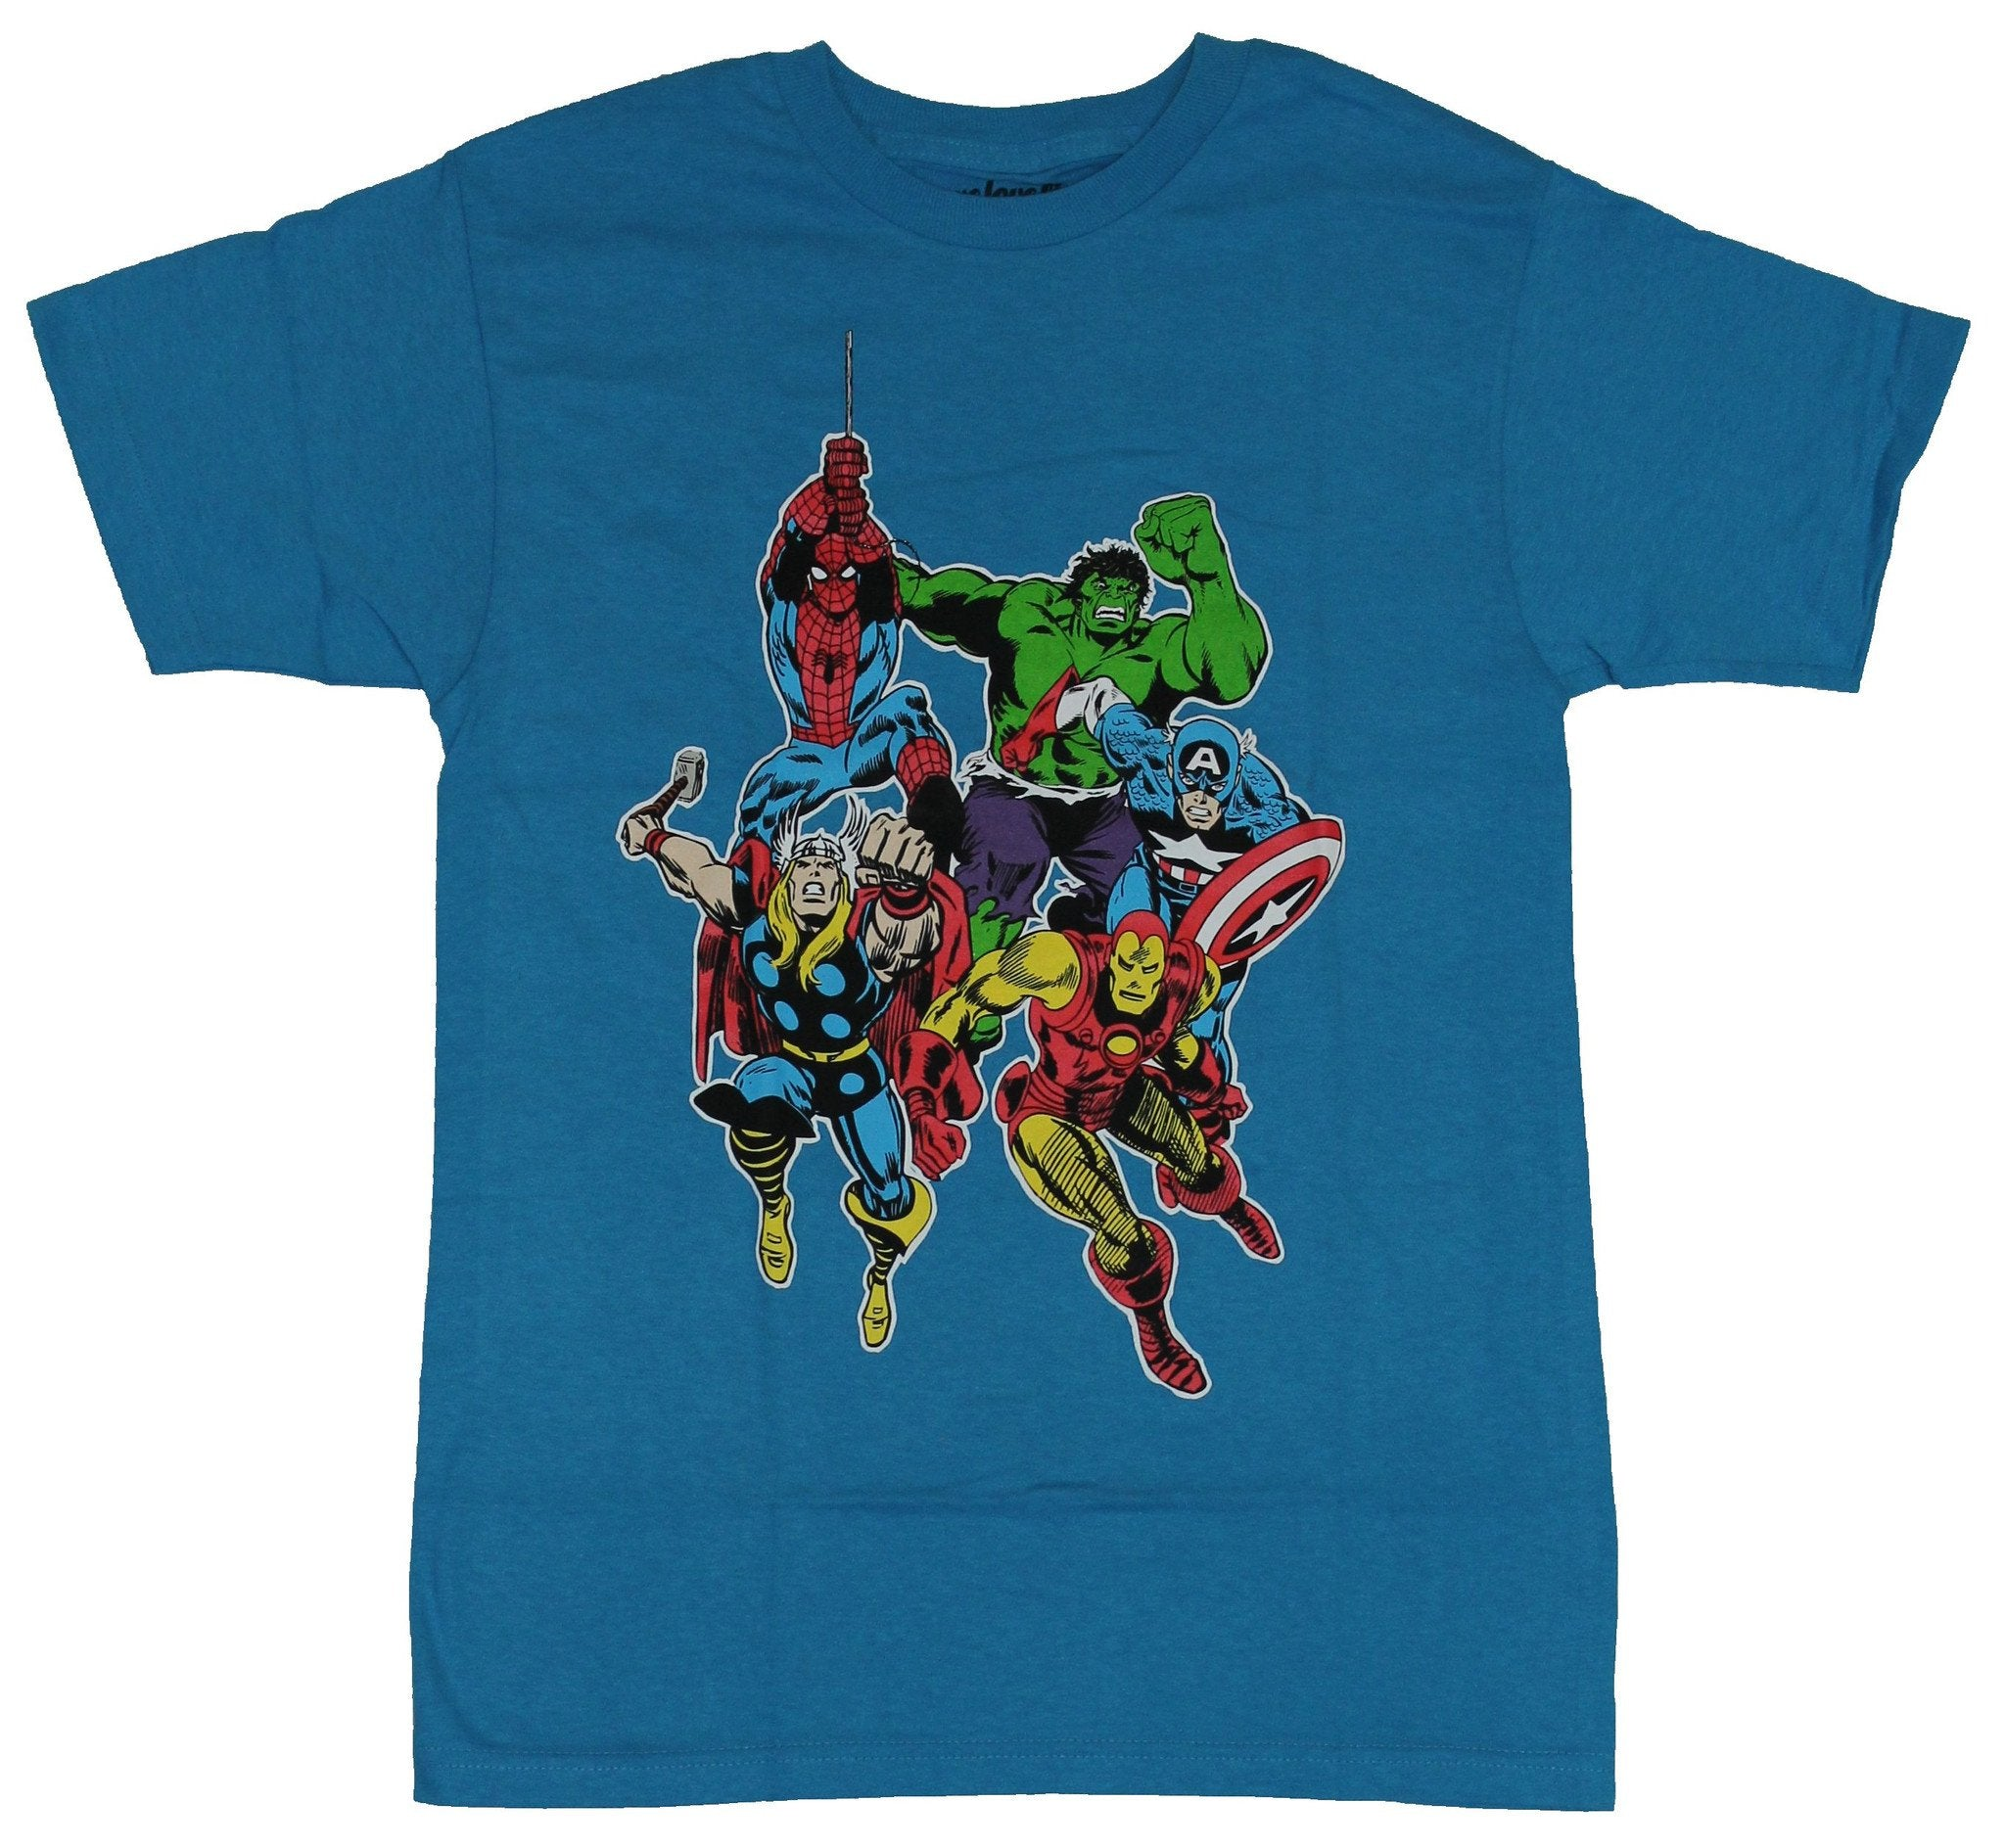 Marvel Comics Mens T-Shirt - Spider-Man & the Avengers Rushing In Image